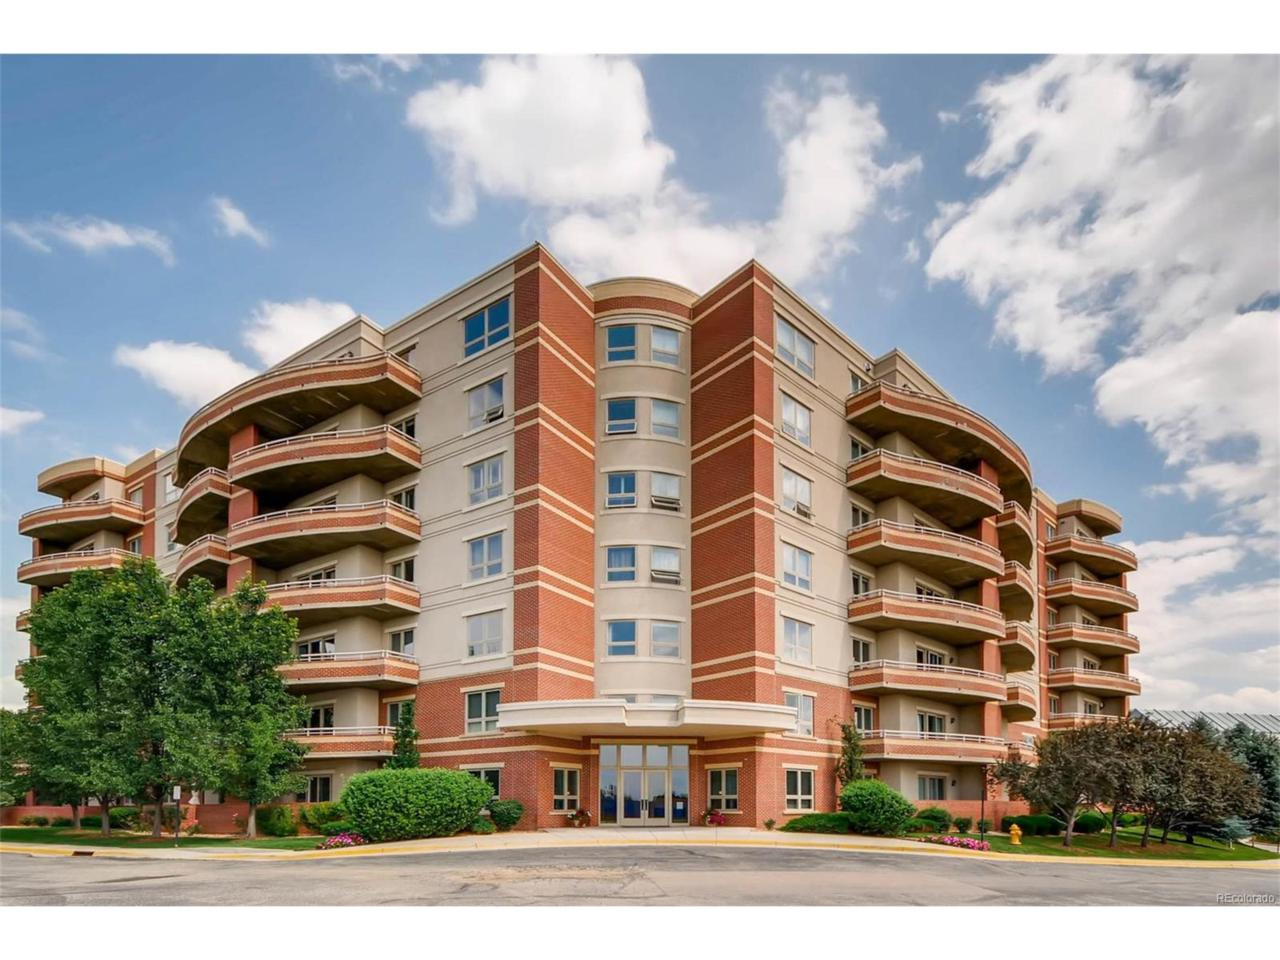 4875 S Monaco Street #401, Denver, CO 80237 (MLS #7362856) :: 8z Real Estate